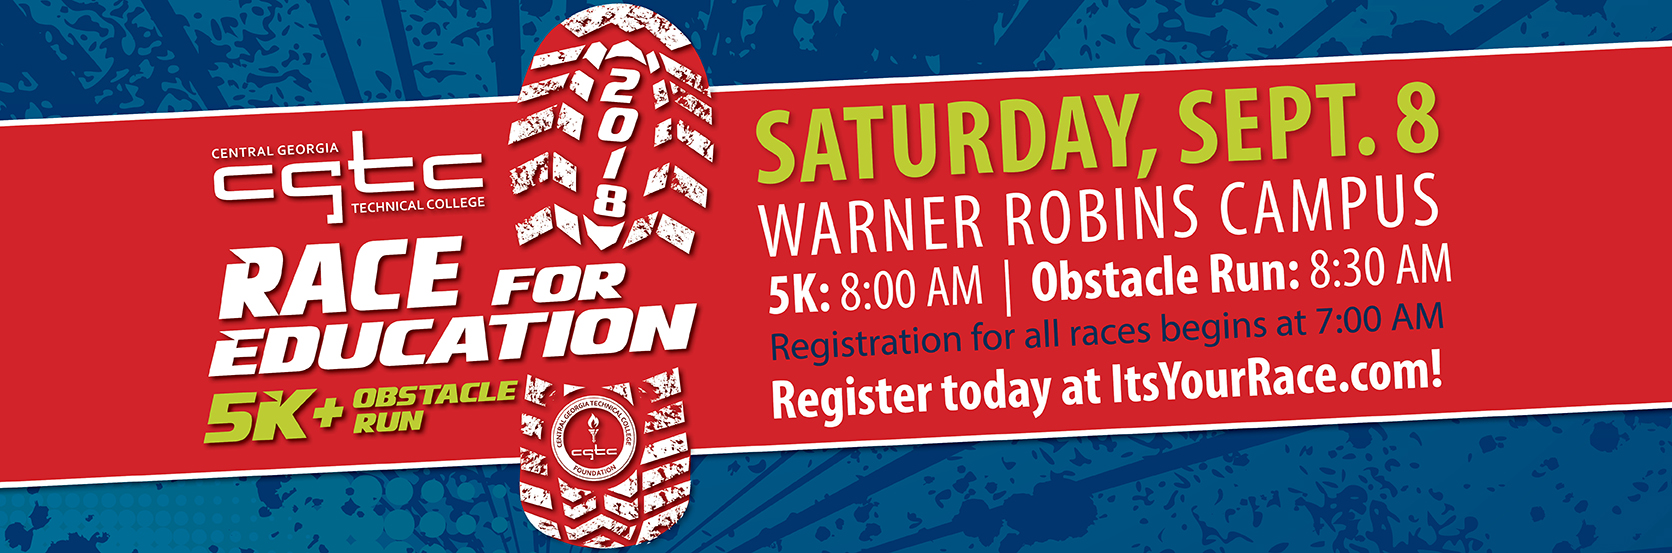 The CGTC Foundation will host its 9th Annual Race for Education 5K and Obstacle Run on Saturday, September 9, 2018. Register at itsyourrace.com.